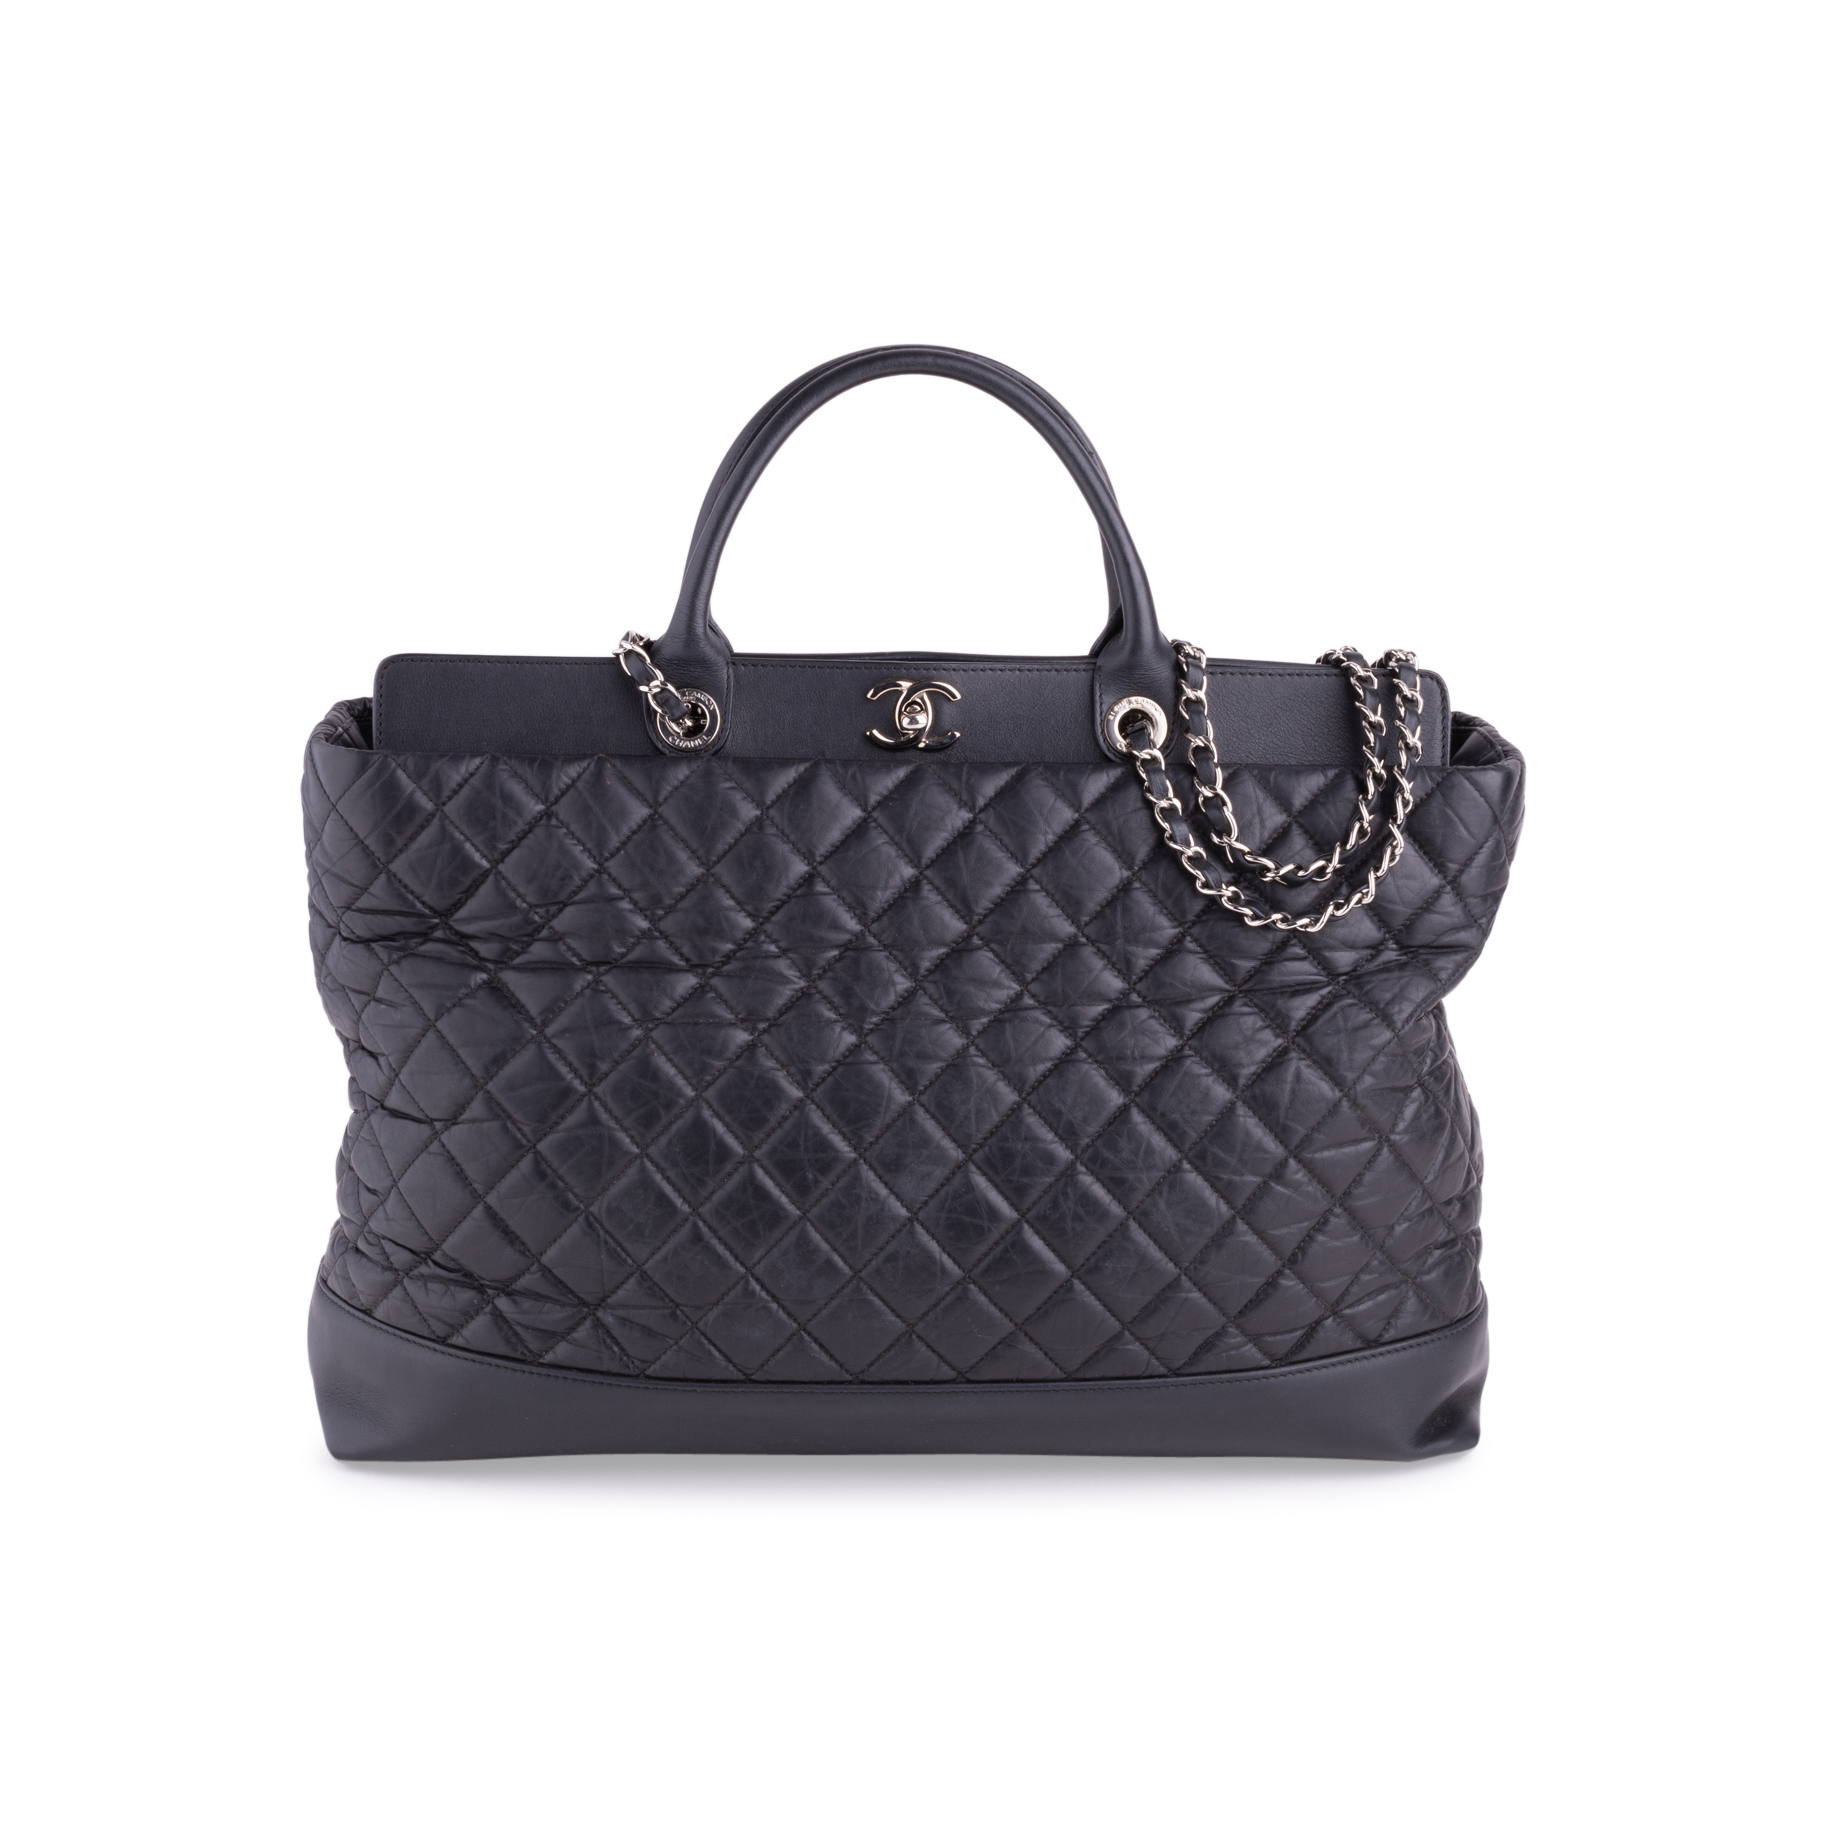 48263deca8857d Authentic Second Hand Chanel Be CC Tote Large Bag (PSS-636-00027) | THE  FIFTH COLLECTION